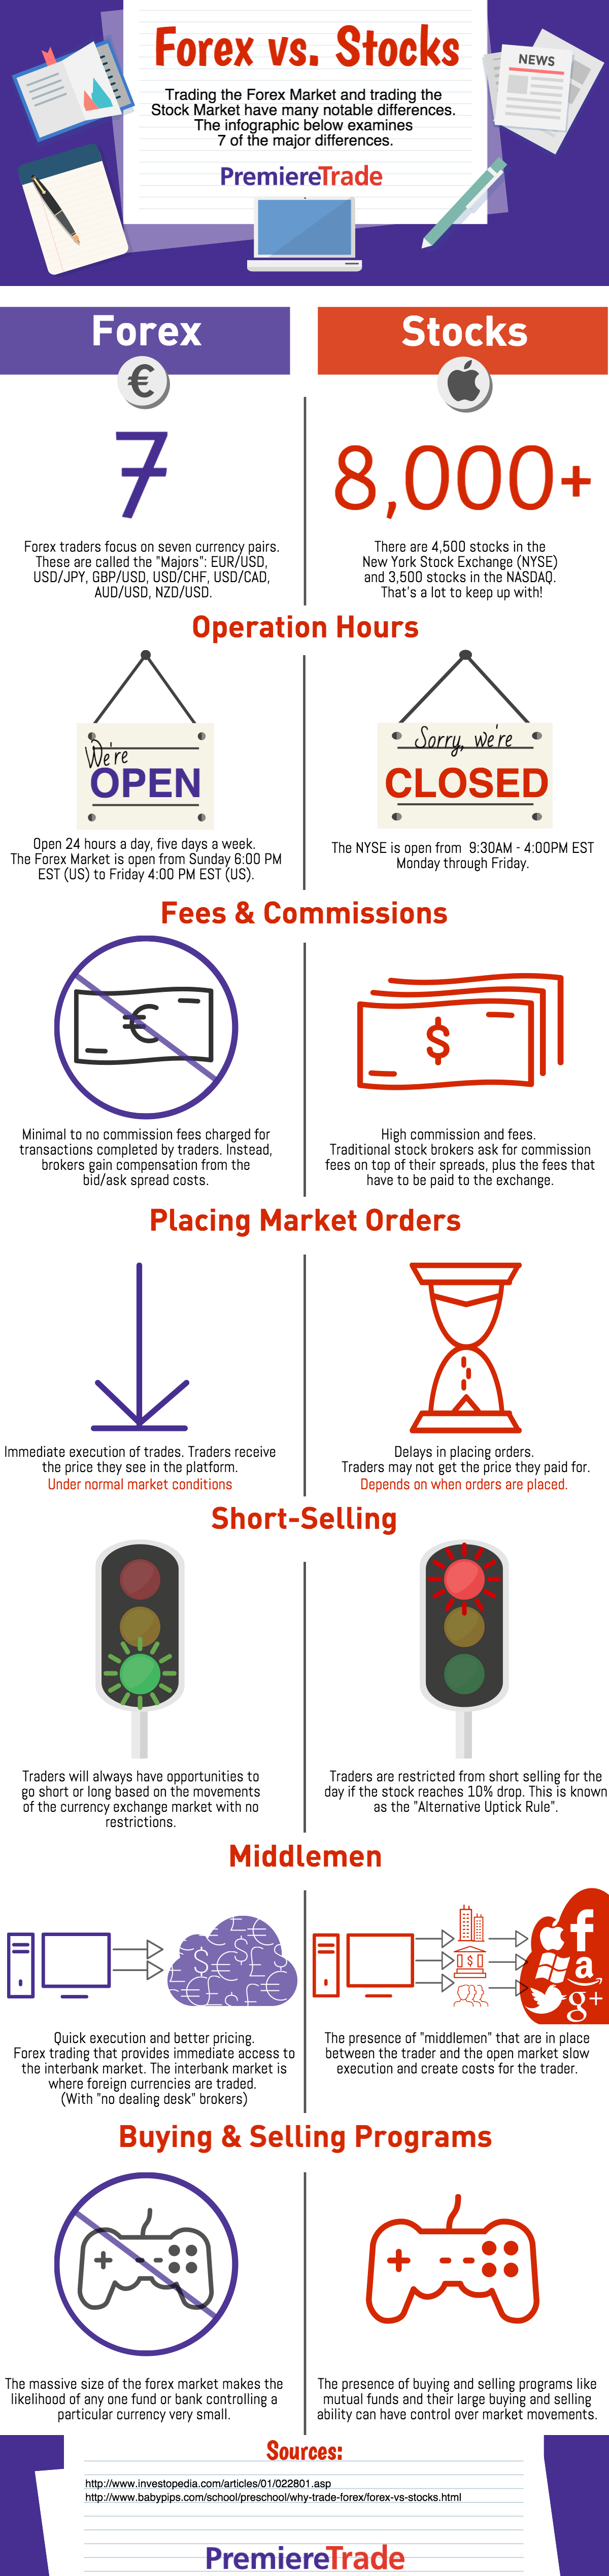 Difference between forex and stock trading